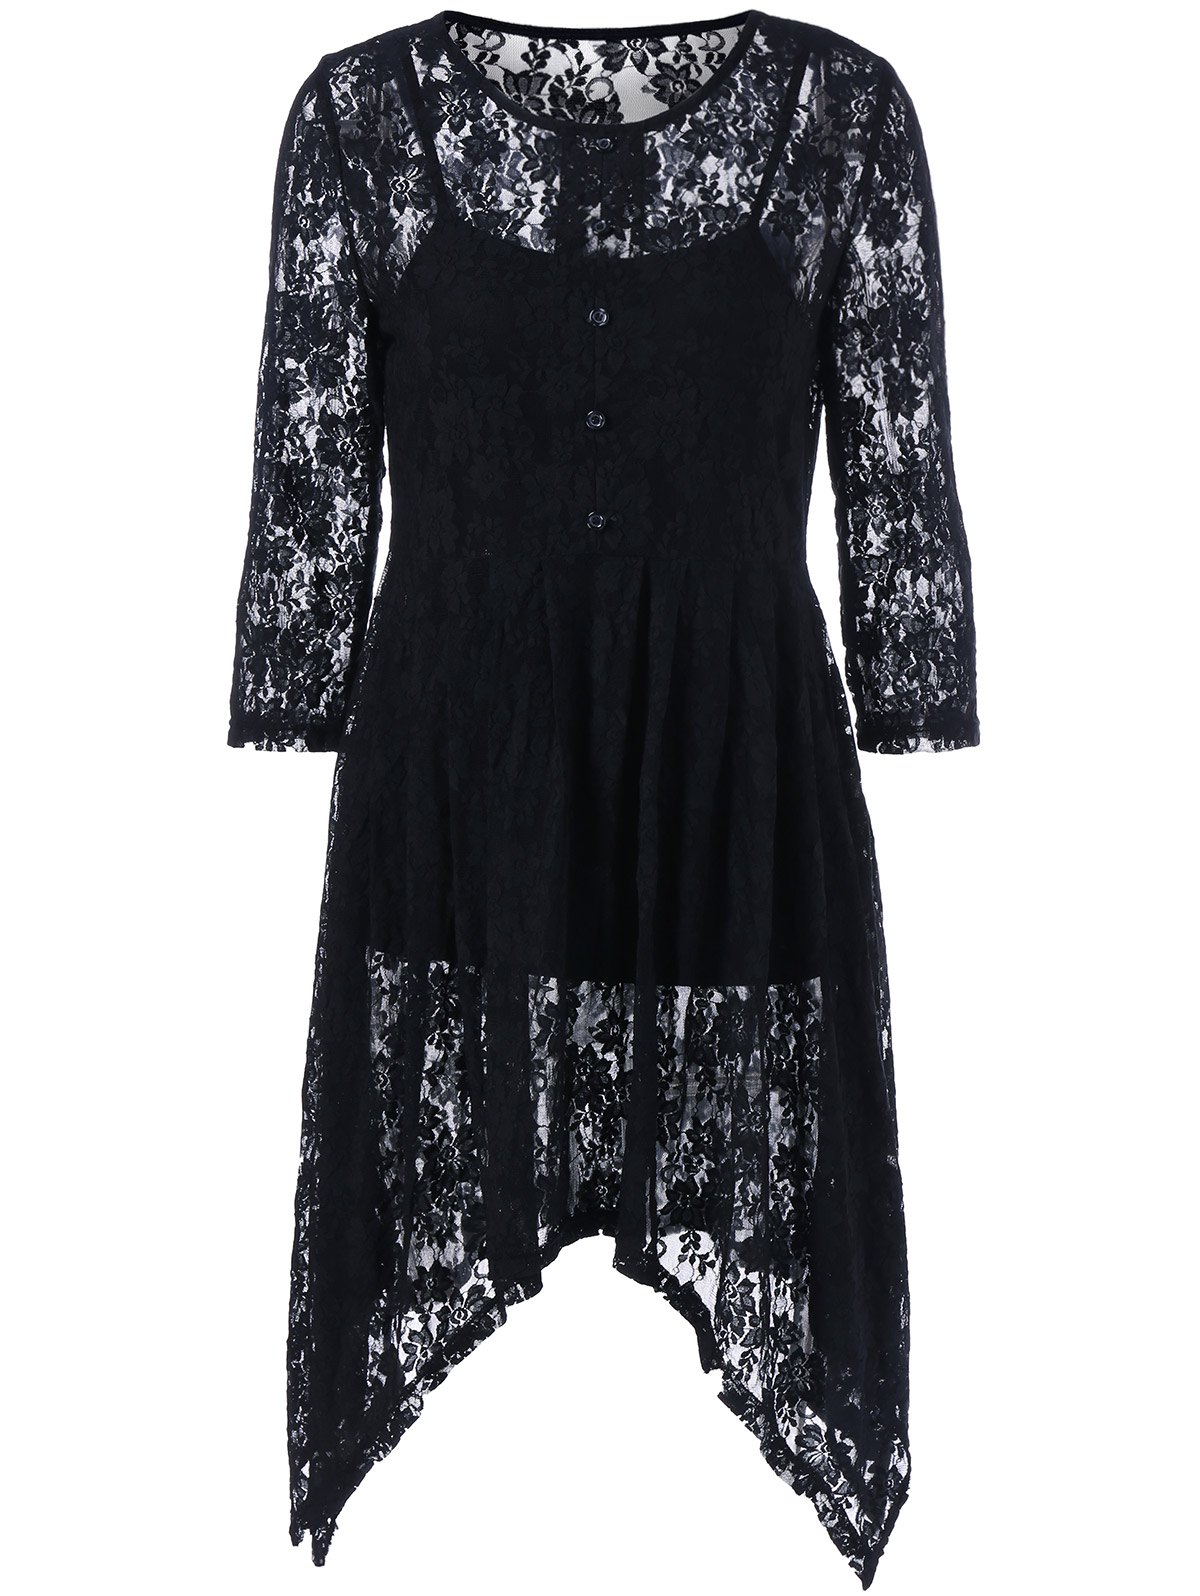 Lace See-Through Asymmetrical Dress with Tank Top - BLACK M